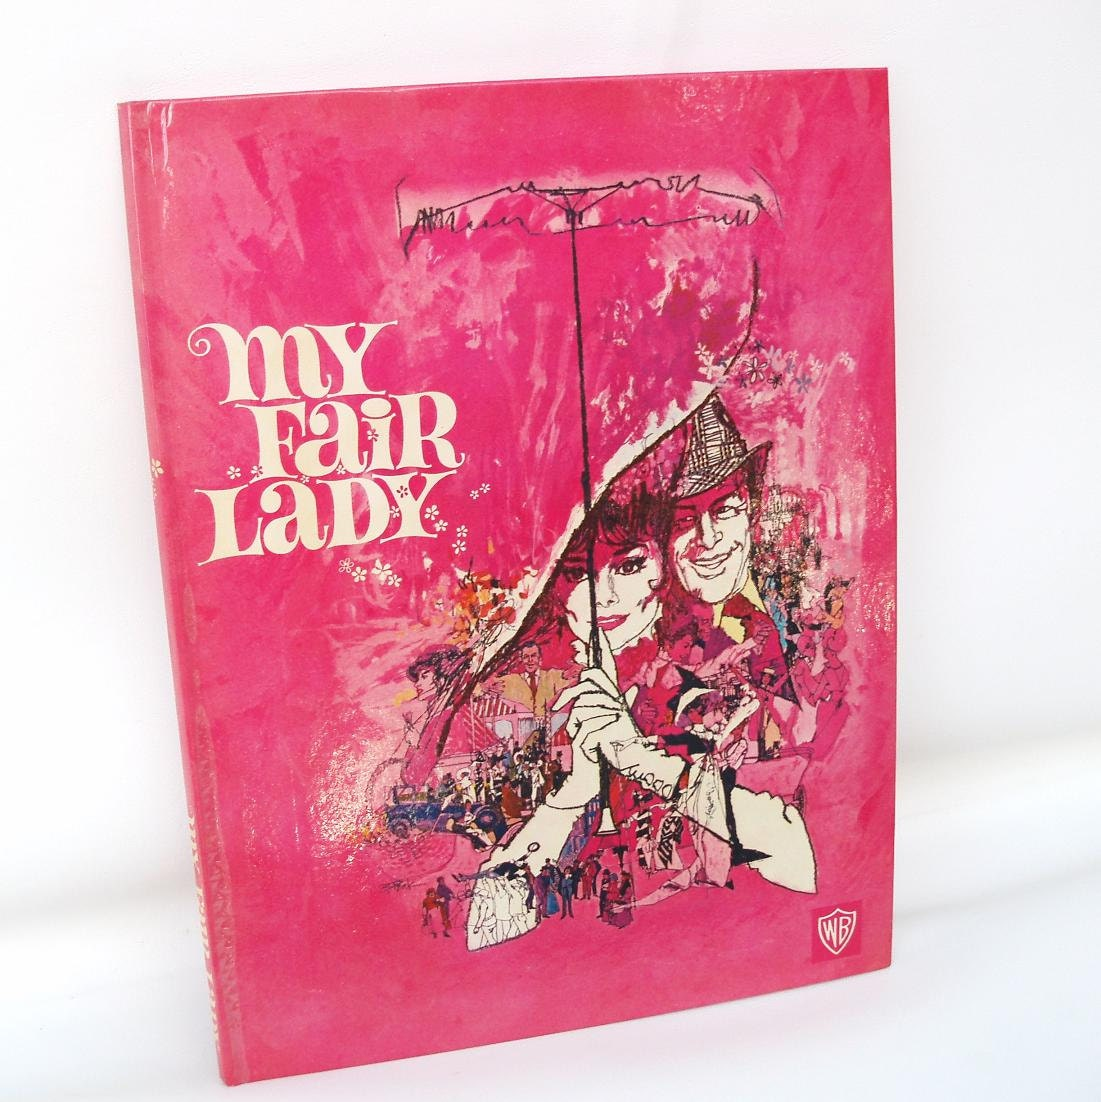 vintage my fair lady book 1960s movie memorabilia collectible. Black Bedroom Furniture Sets. Home Design Ideas